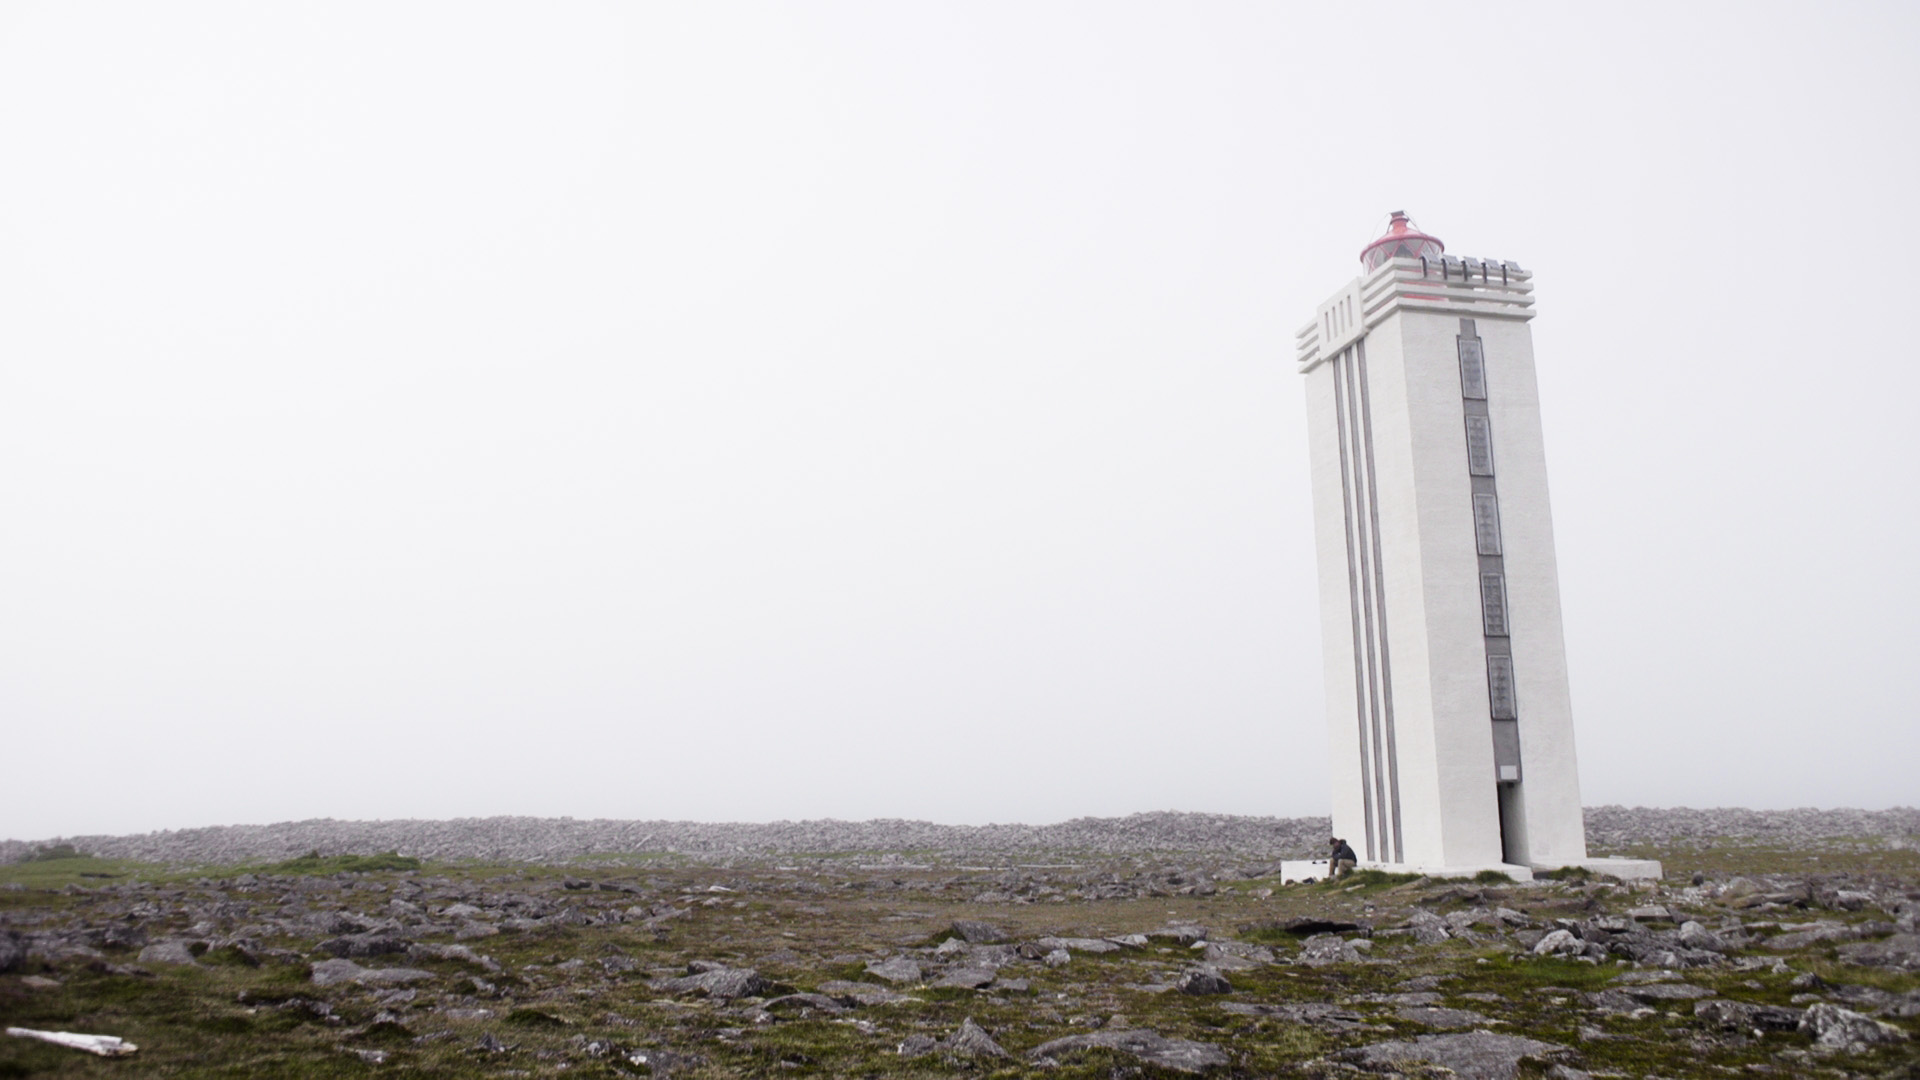 In 2014, I came upon the northernmost lighthouse at 2:30am when the sun was just beginning to rise behind it, an incredibly beautiful experience. This time, it was midday and quite foggy. I couldn't see it clearly until I was a few hundred feet away.